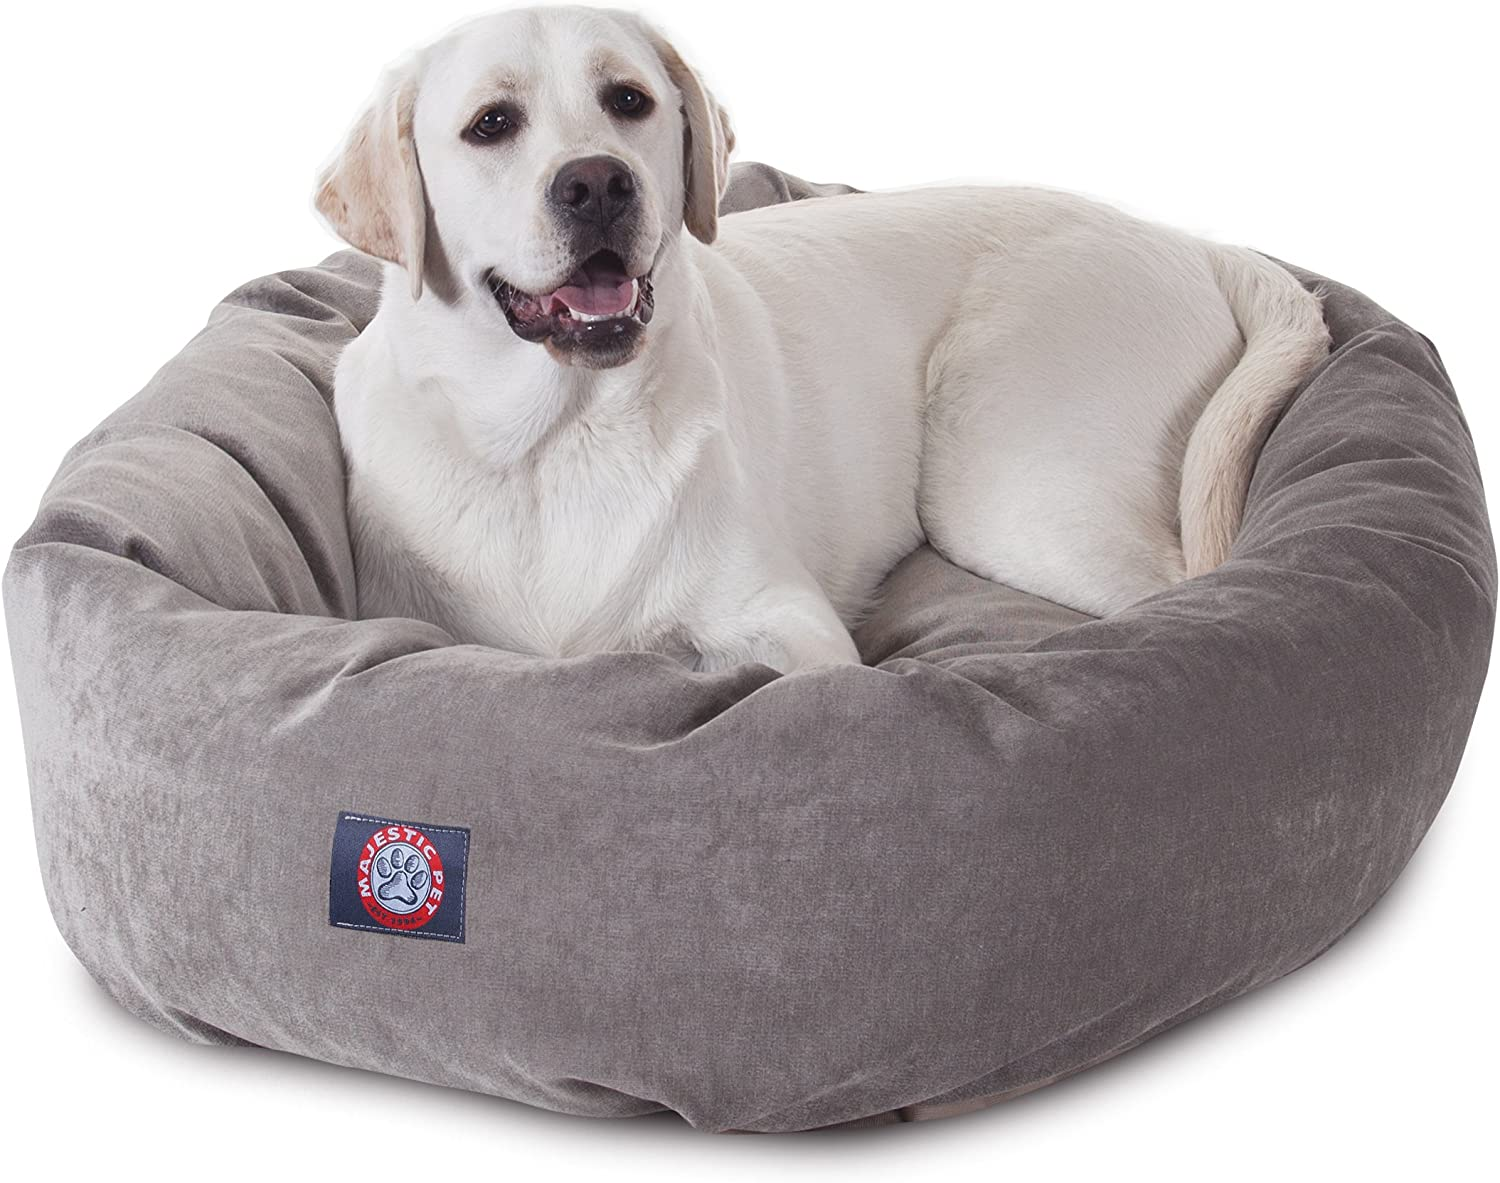 Villa Bagel Dog Bed by Majestic Pet Products